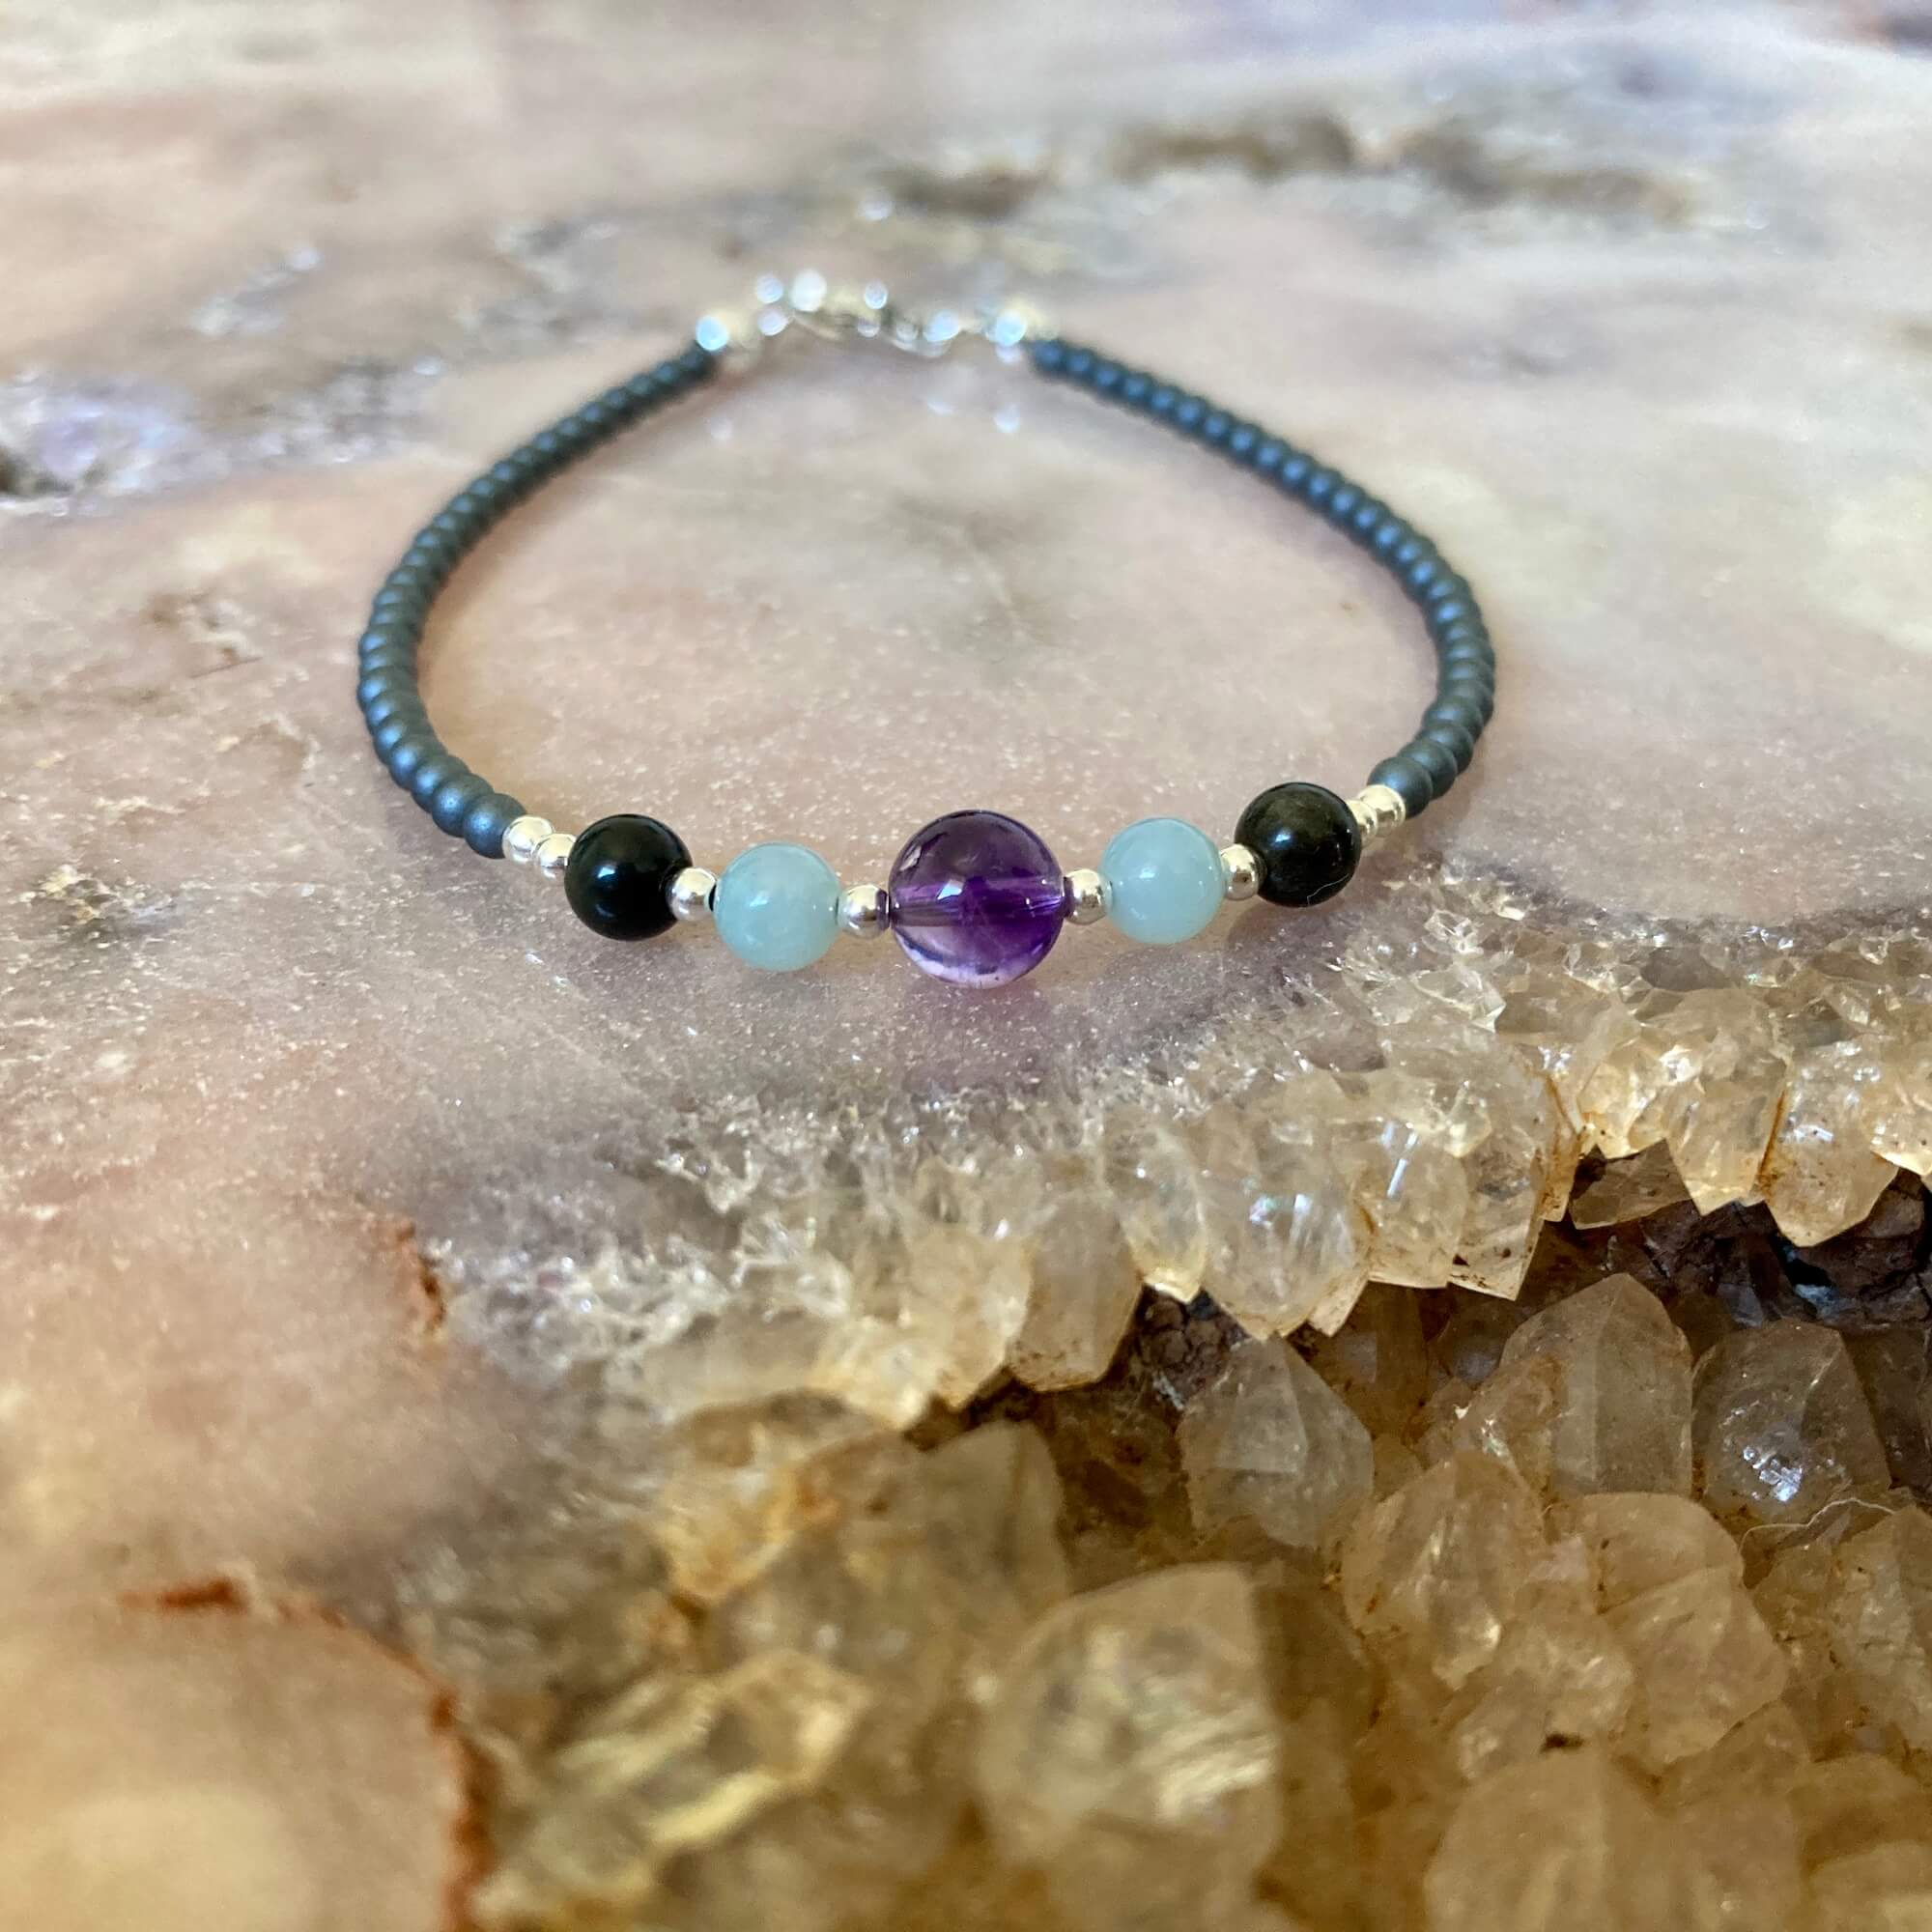 Ladies aquarius bracelet for healing